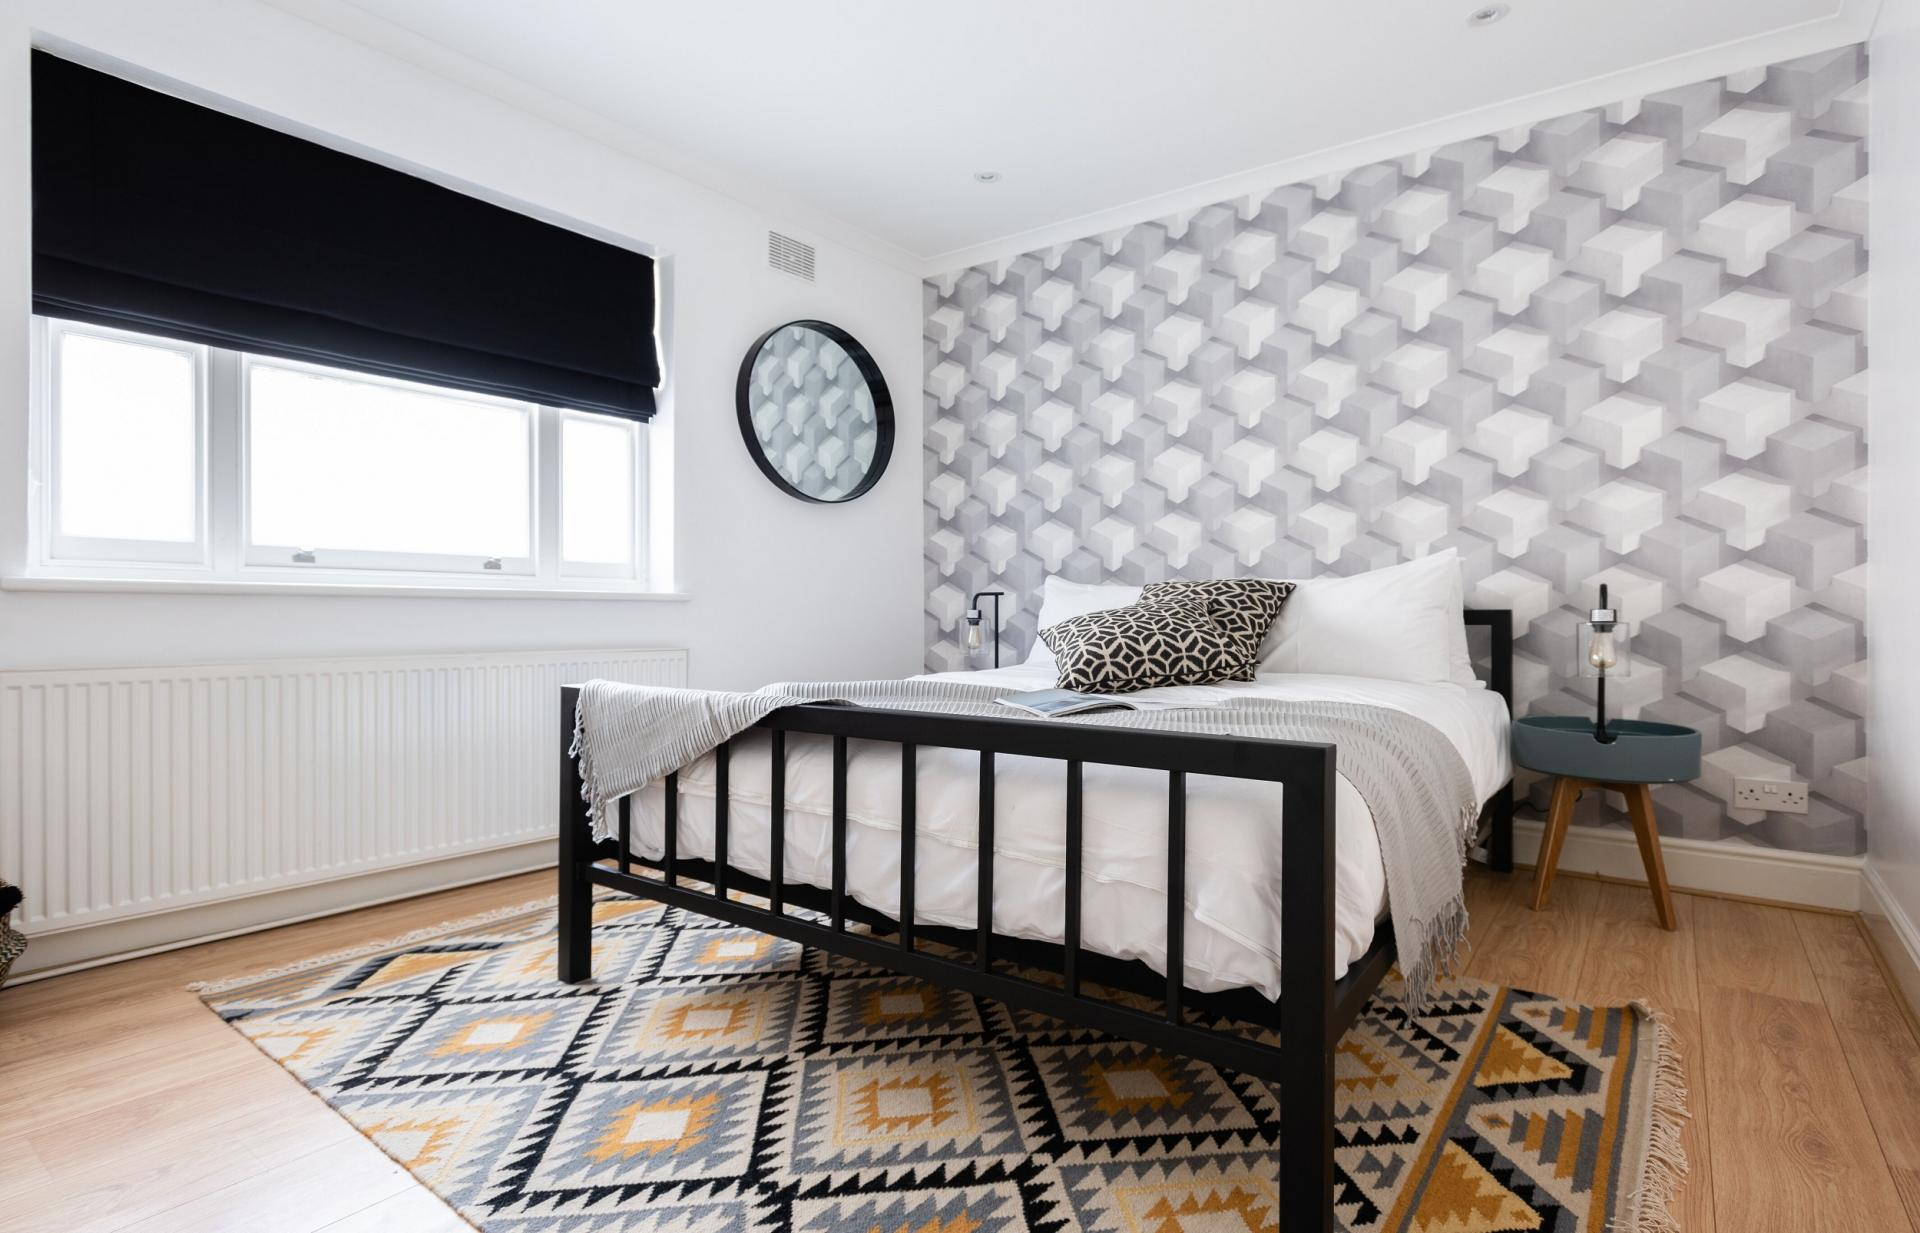 Double bed at The Kensington Palace Mews, Kensington, London - Citybase Apartments